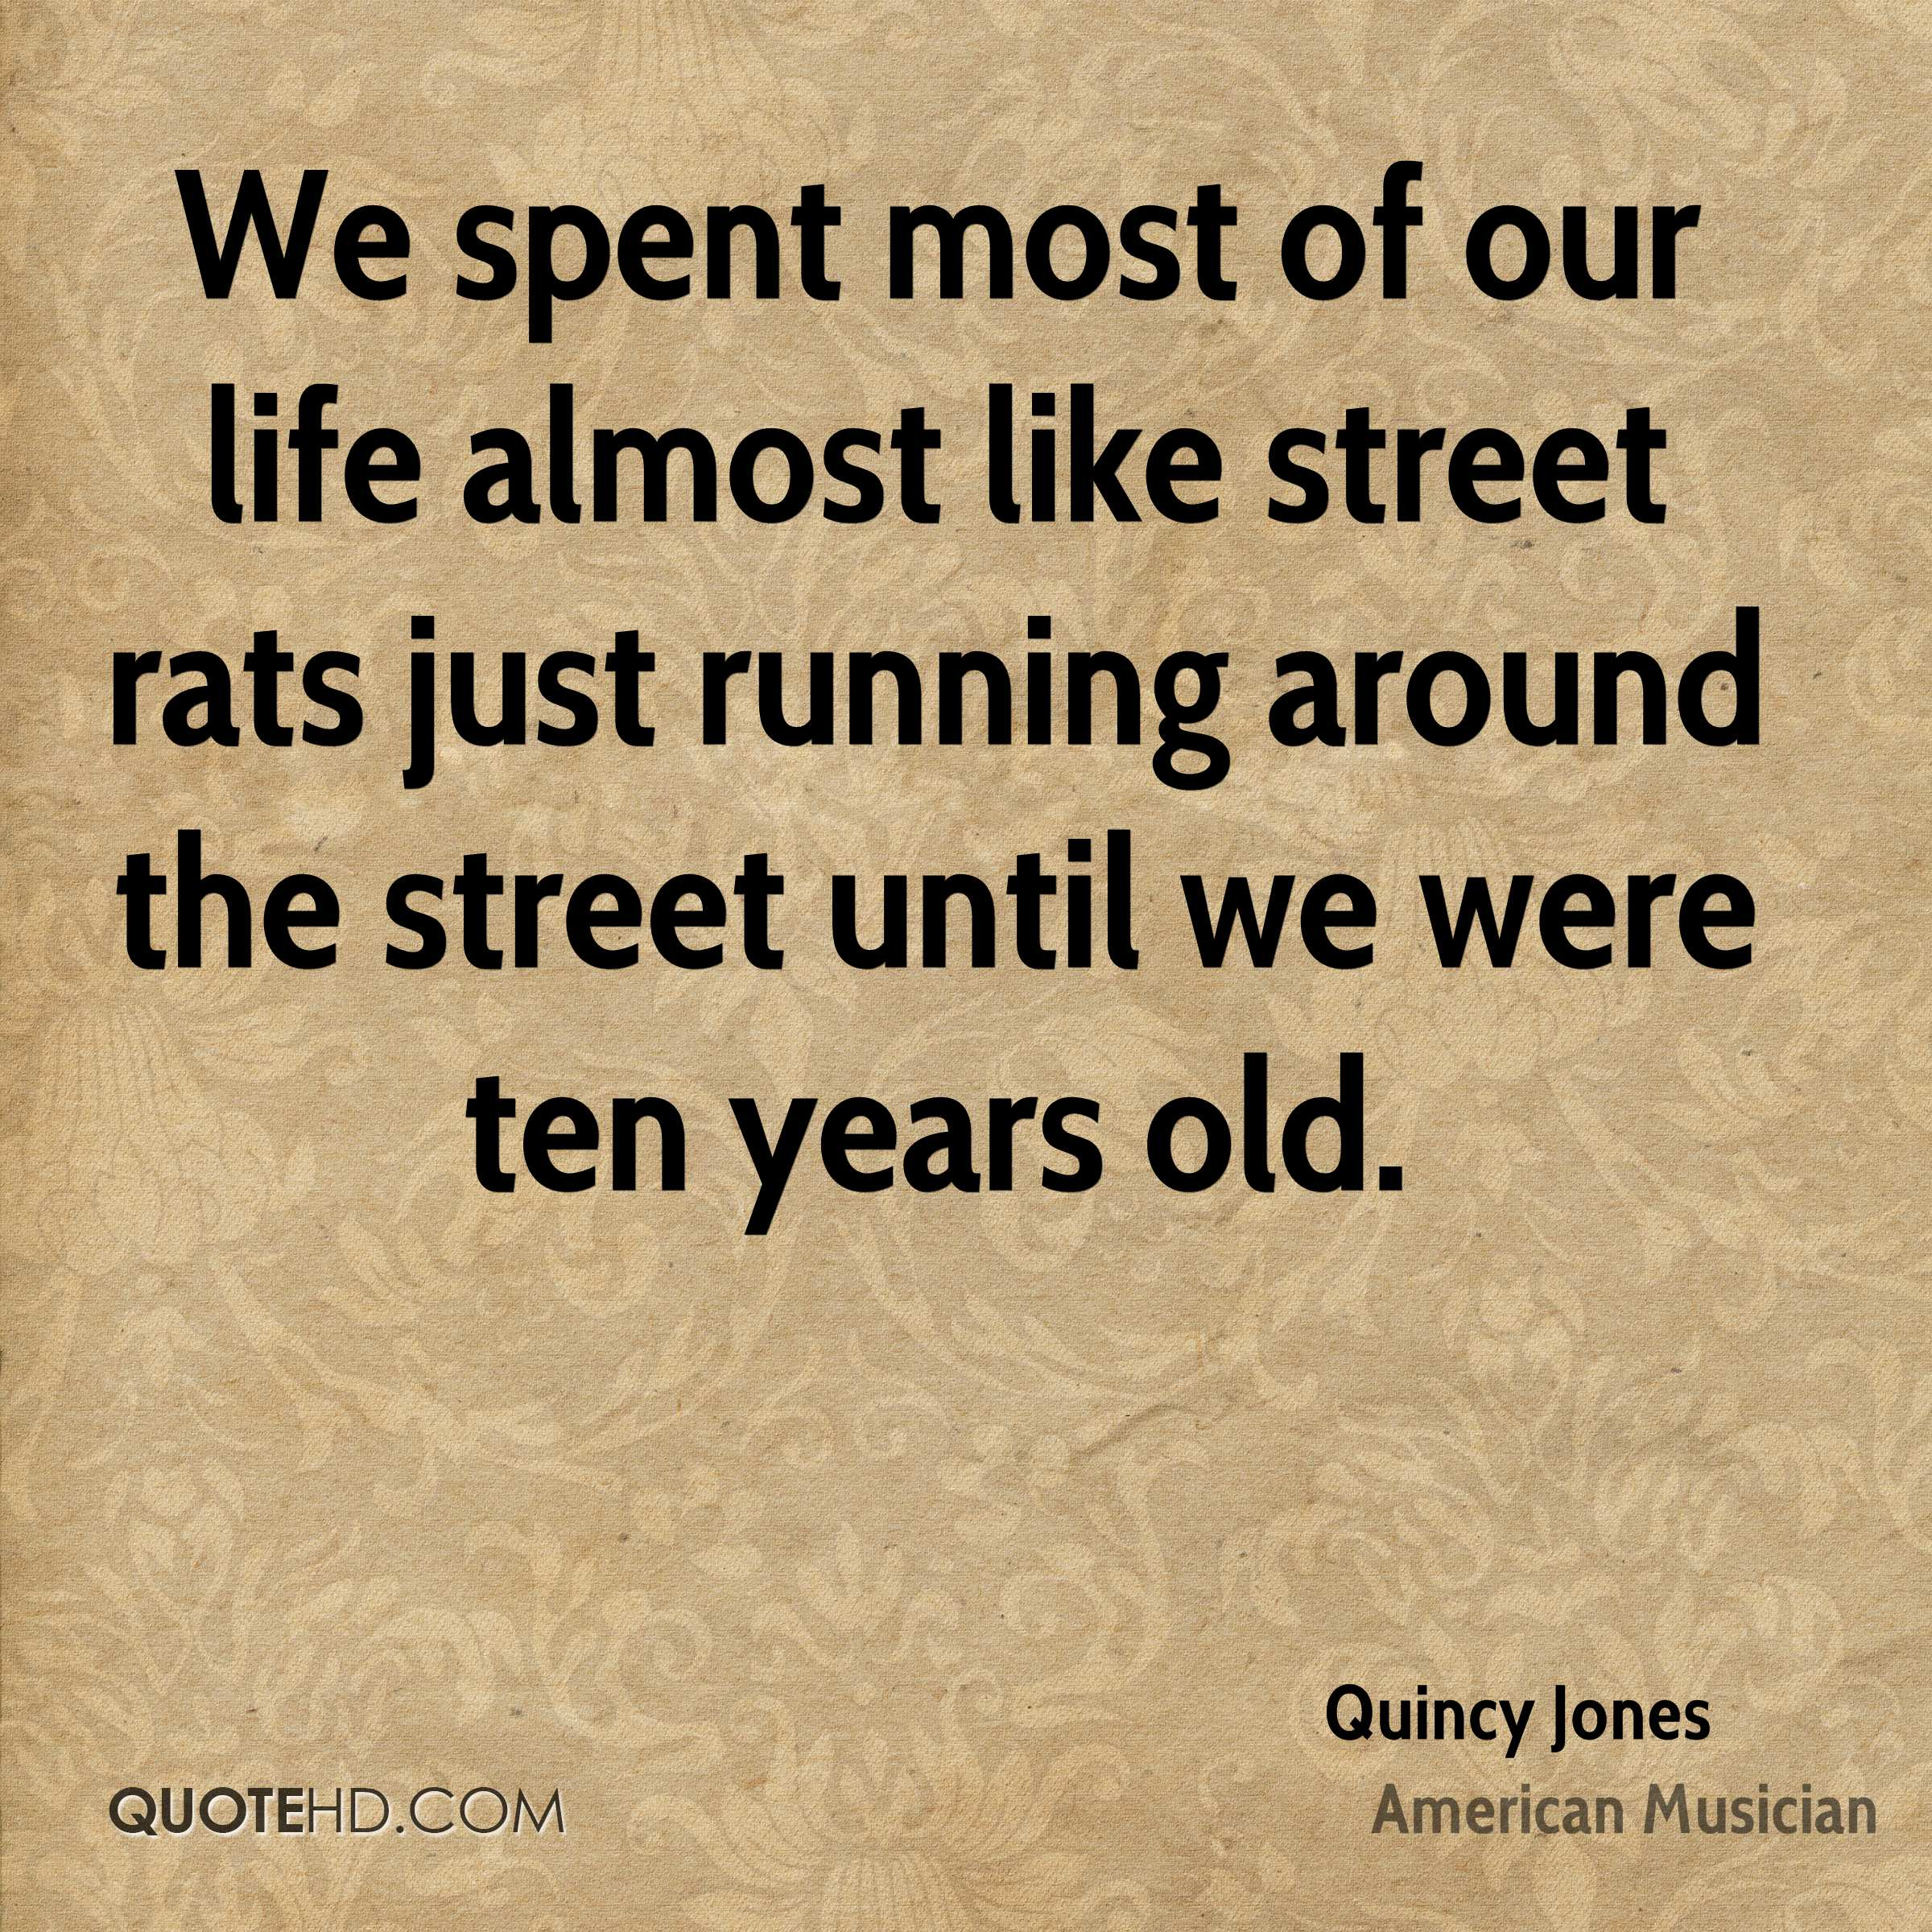 We spent most of our life almost like street rats just running around the street until we were ten years old.